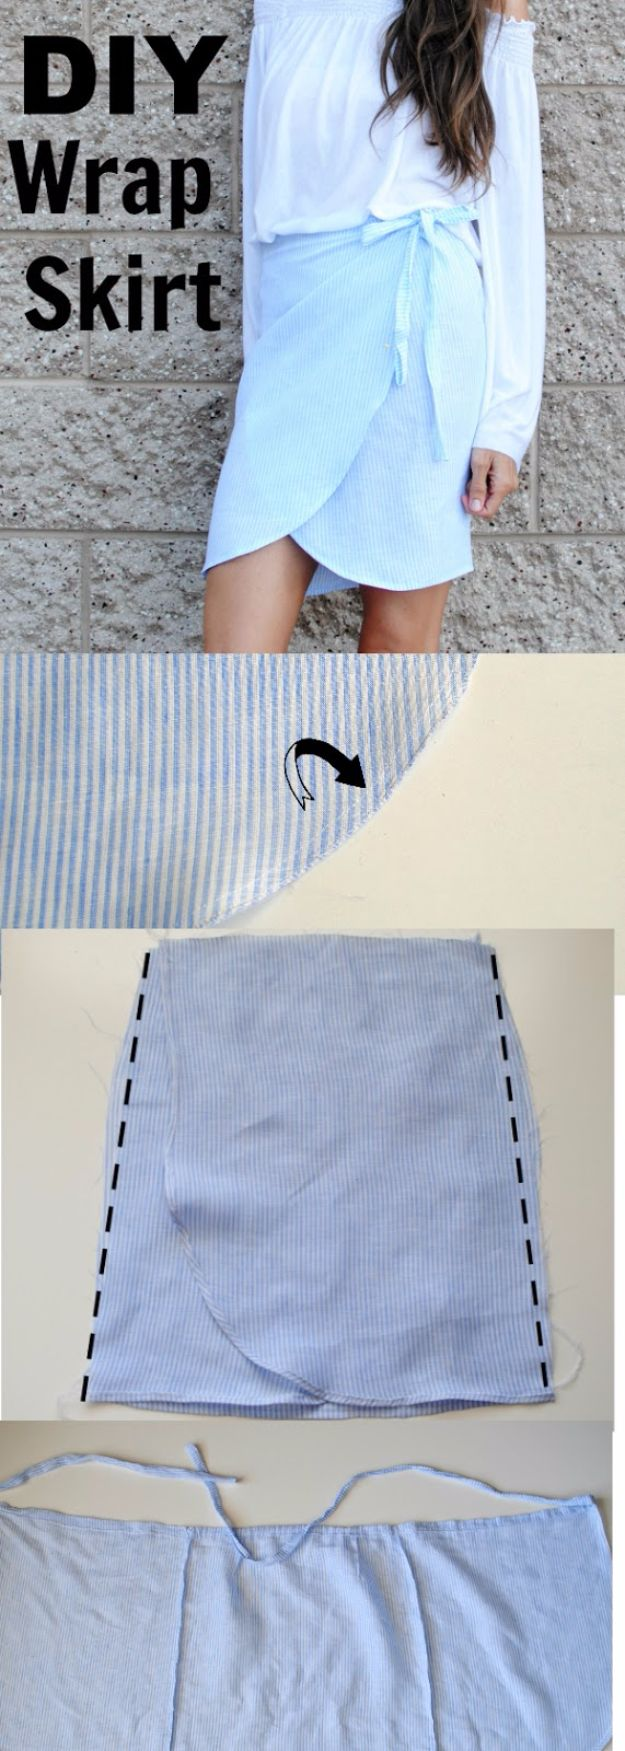 DIY Teen Fashion for Spring - DIY Linen Tulip Wrap Skirt - Easy Homemade Clothing Tutorials and Things To Make To Wear - Cute Patterns and Projects for Teens to Make, T-Shirts, Skirts, Dresses, Shorts and Ideas for Jeans - Tops, Tanks and Tees With Free Tutorial Ideas and Instructions http://diyprojectsforteens.com/teen-fashion-spring